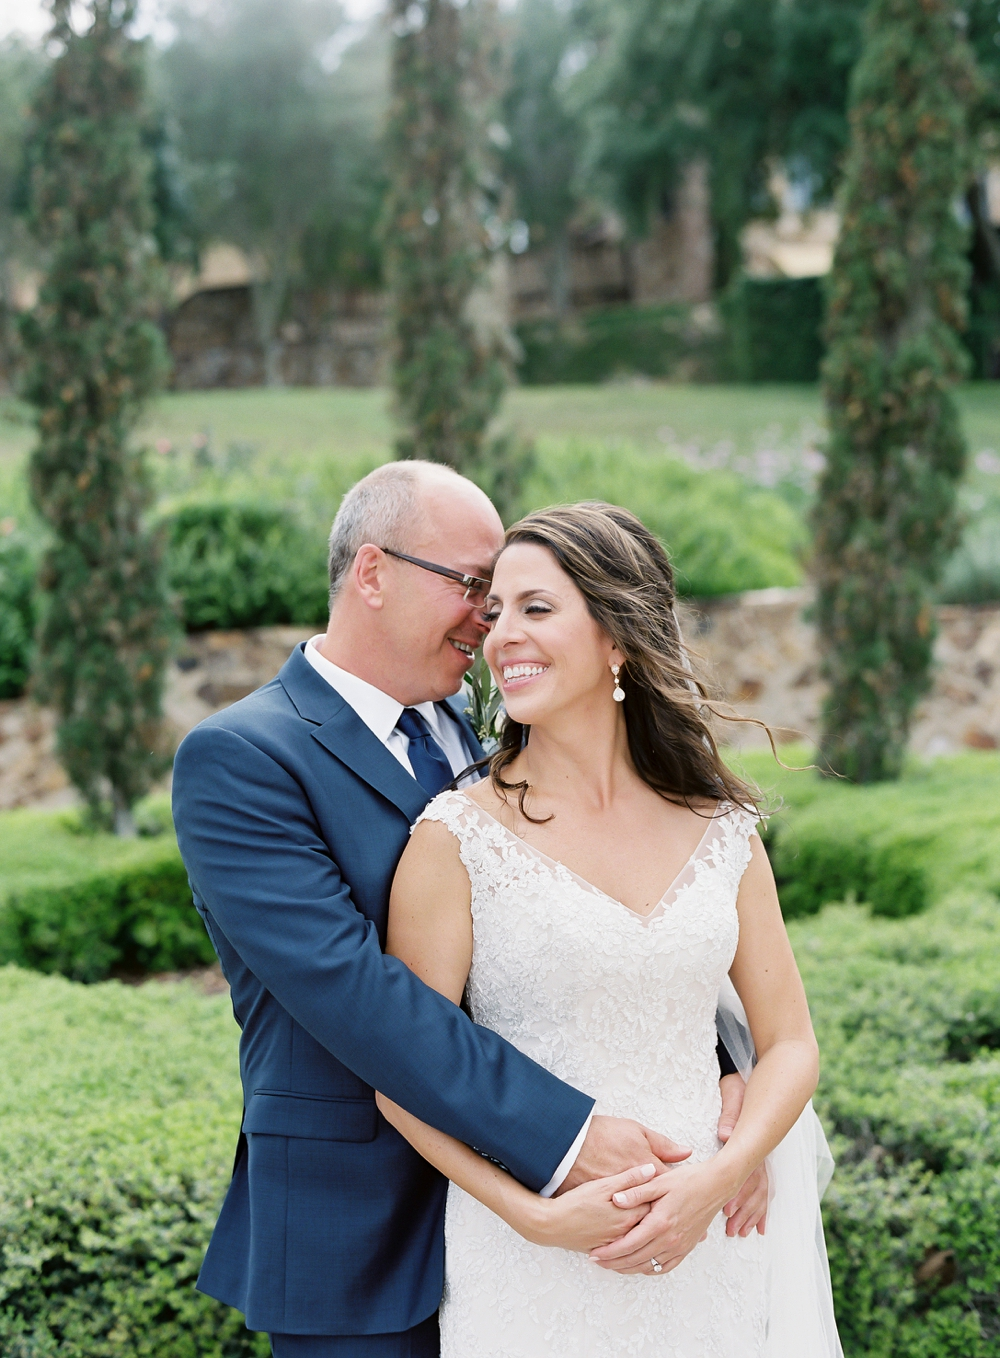 Vicki Grafton Photography - Fine Art Film Wedding Photographer - Bella Collina Wedding_0039.jpg